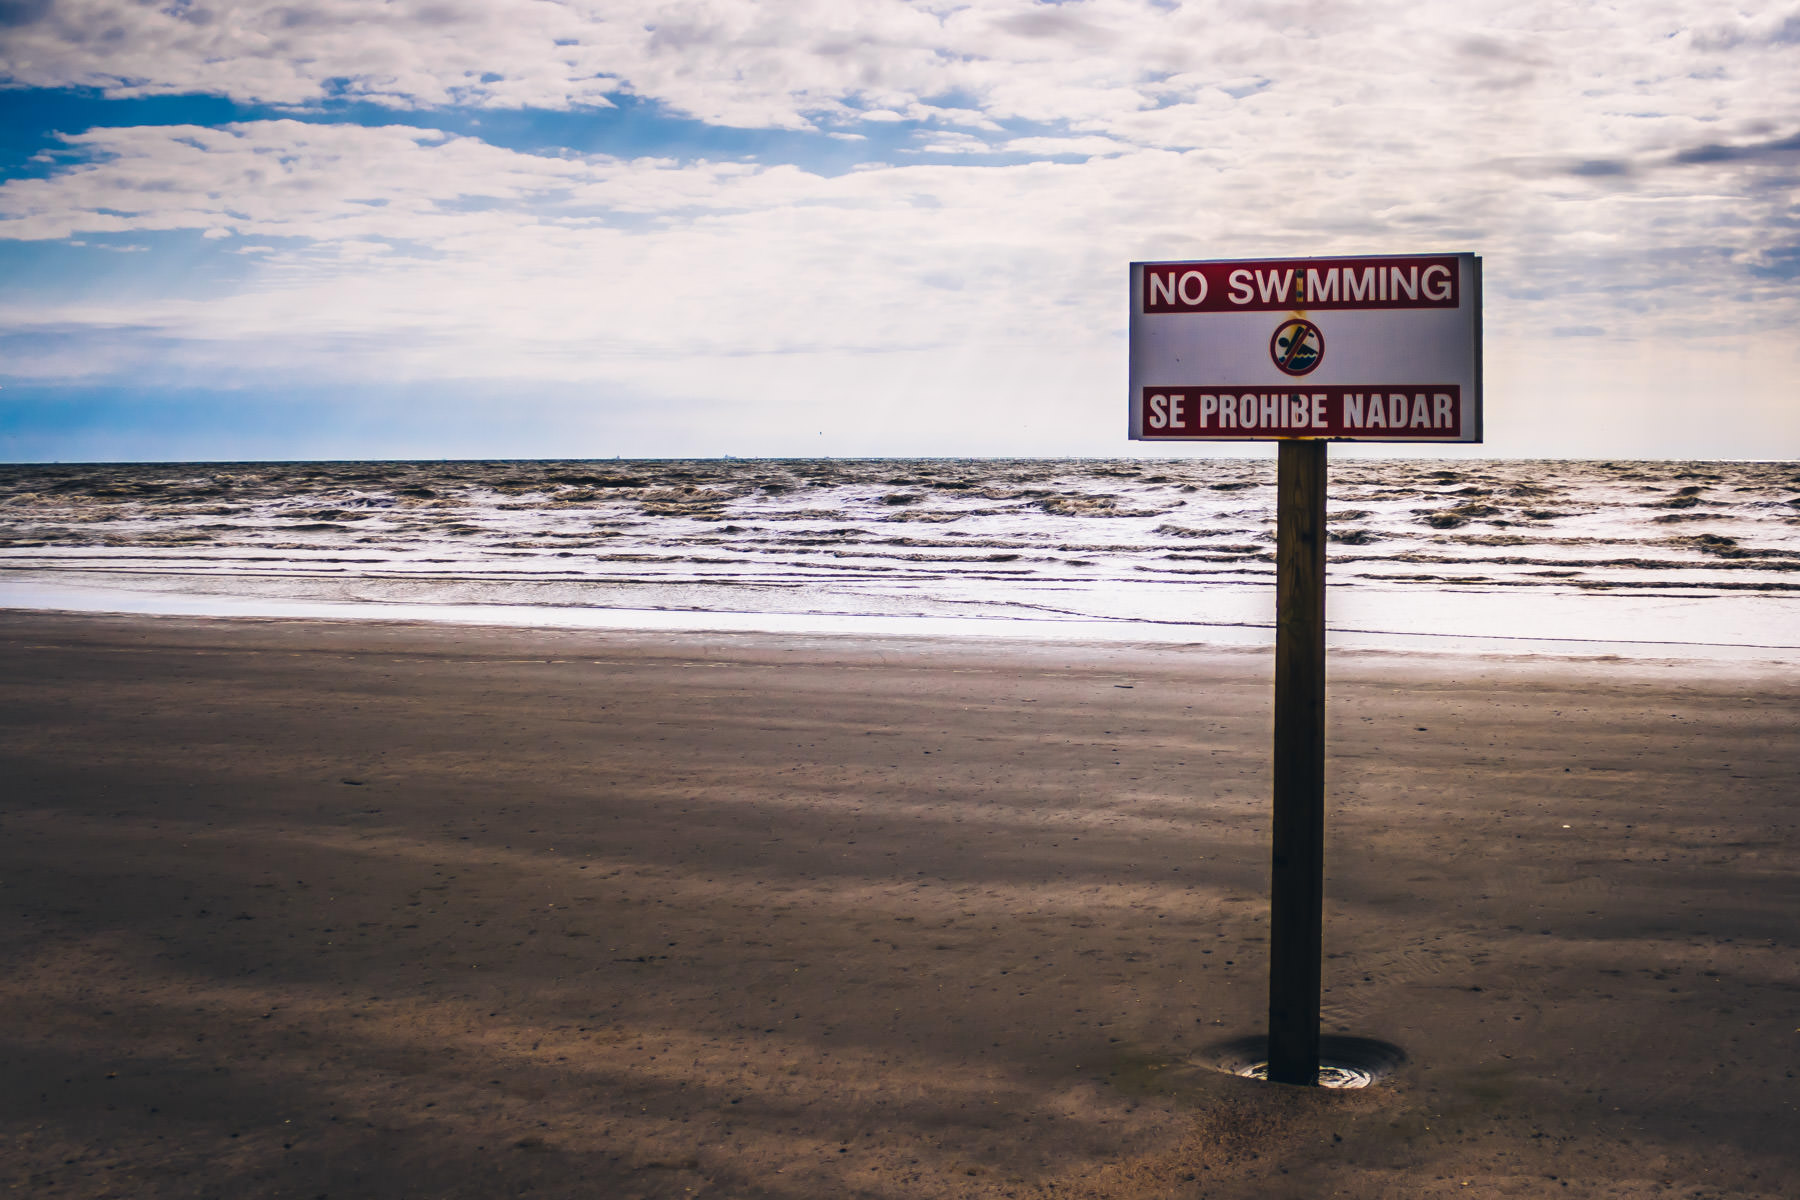 A warning sign on a Galveston, Texas beach.